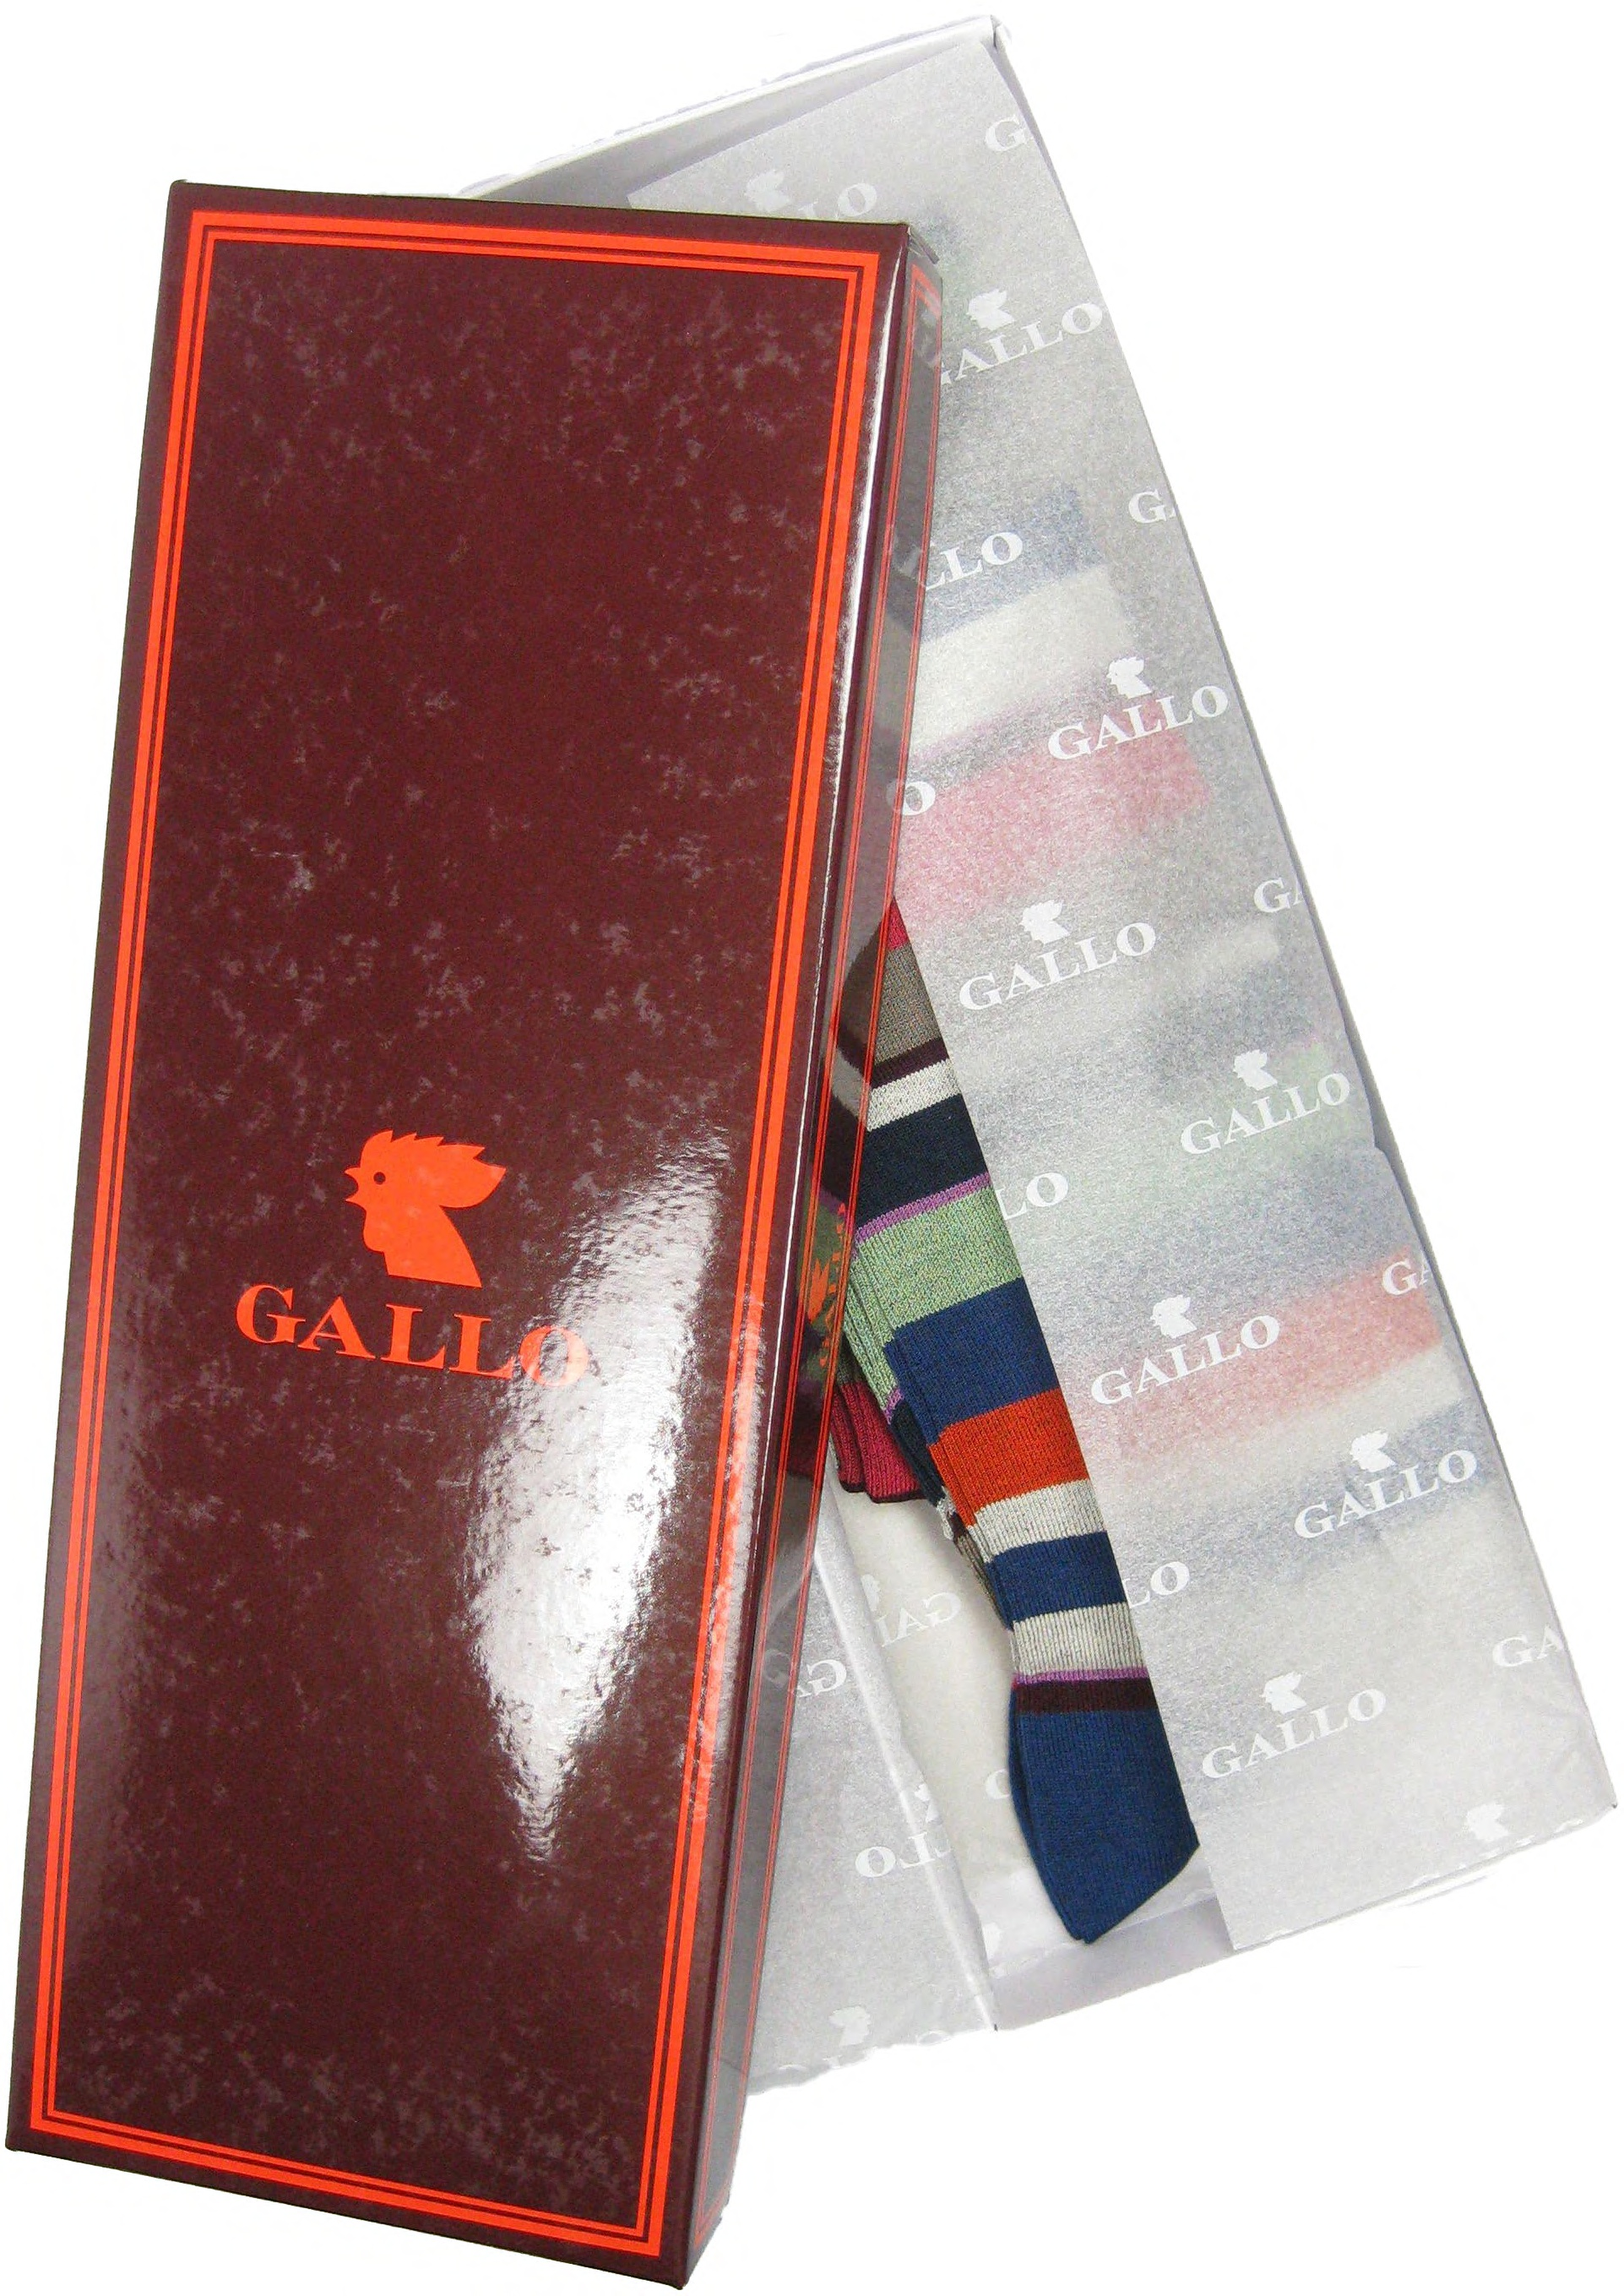 Gallo-Gift-Box.jpg